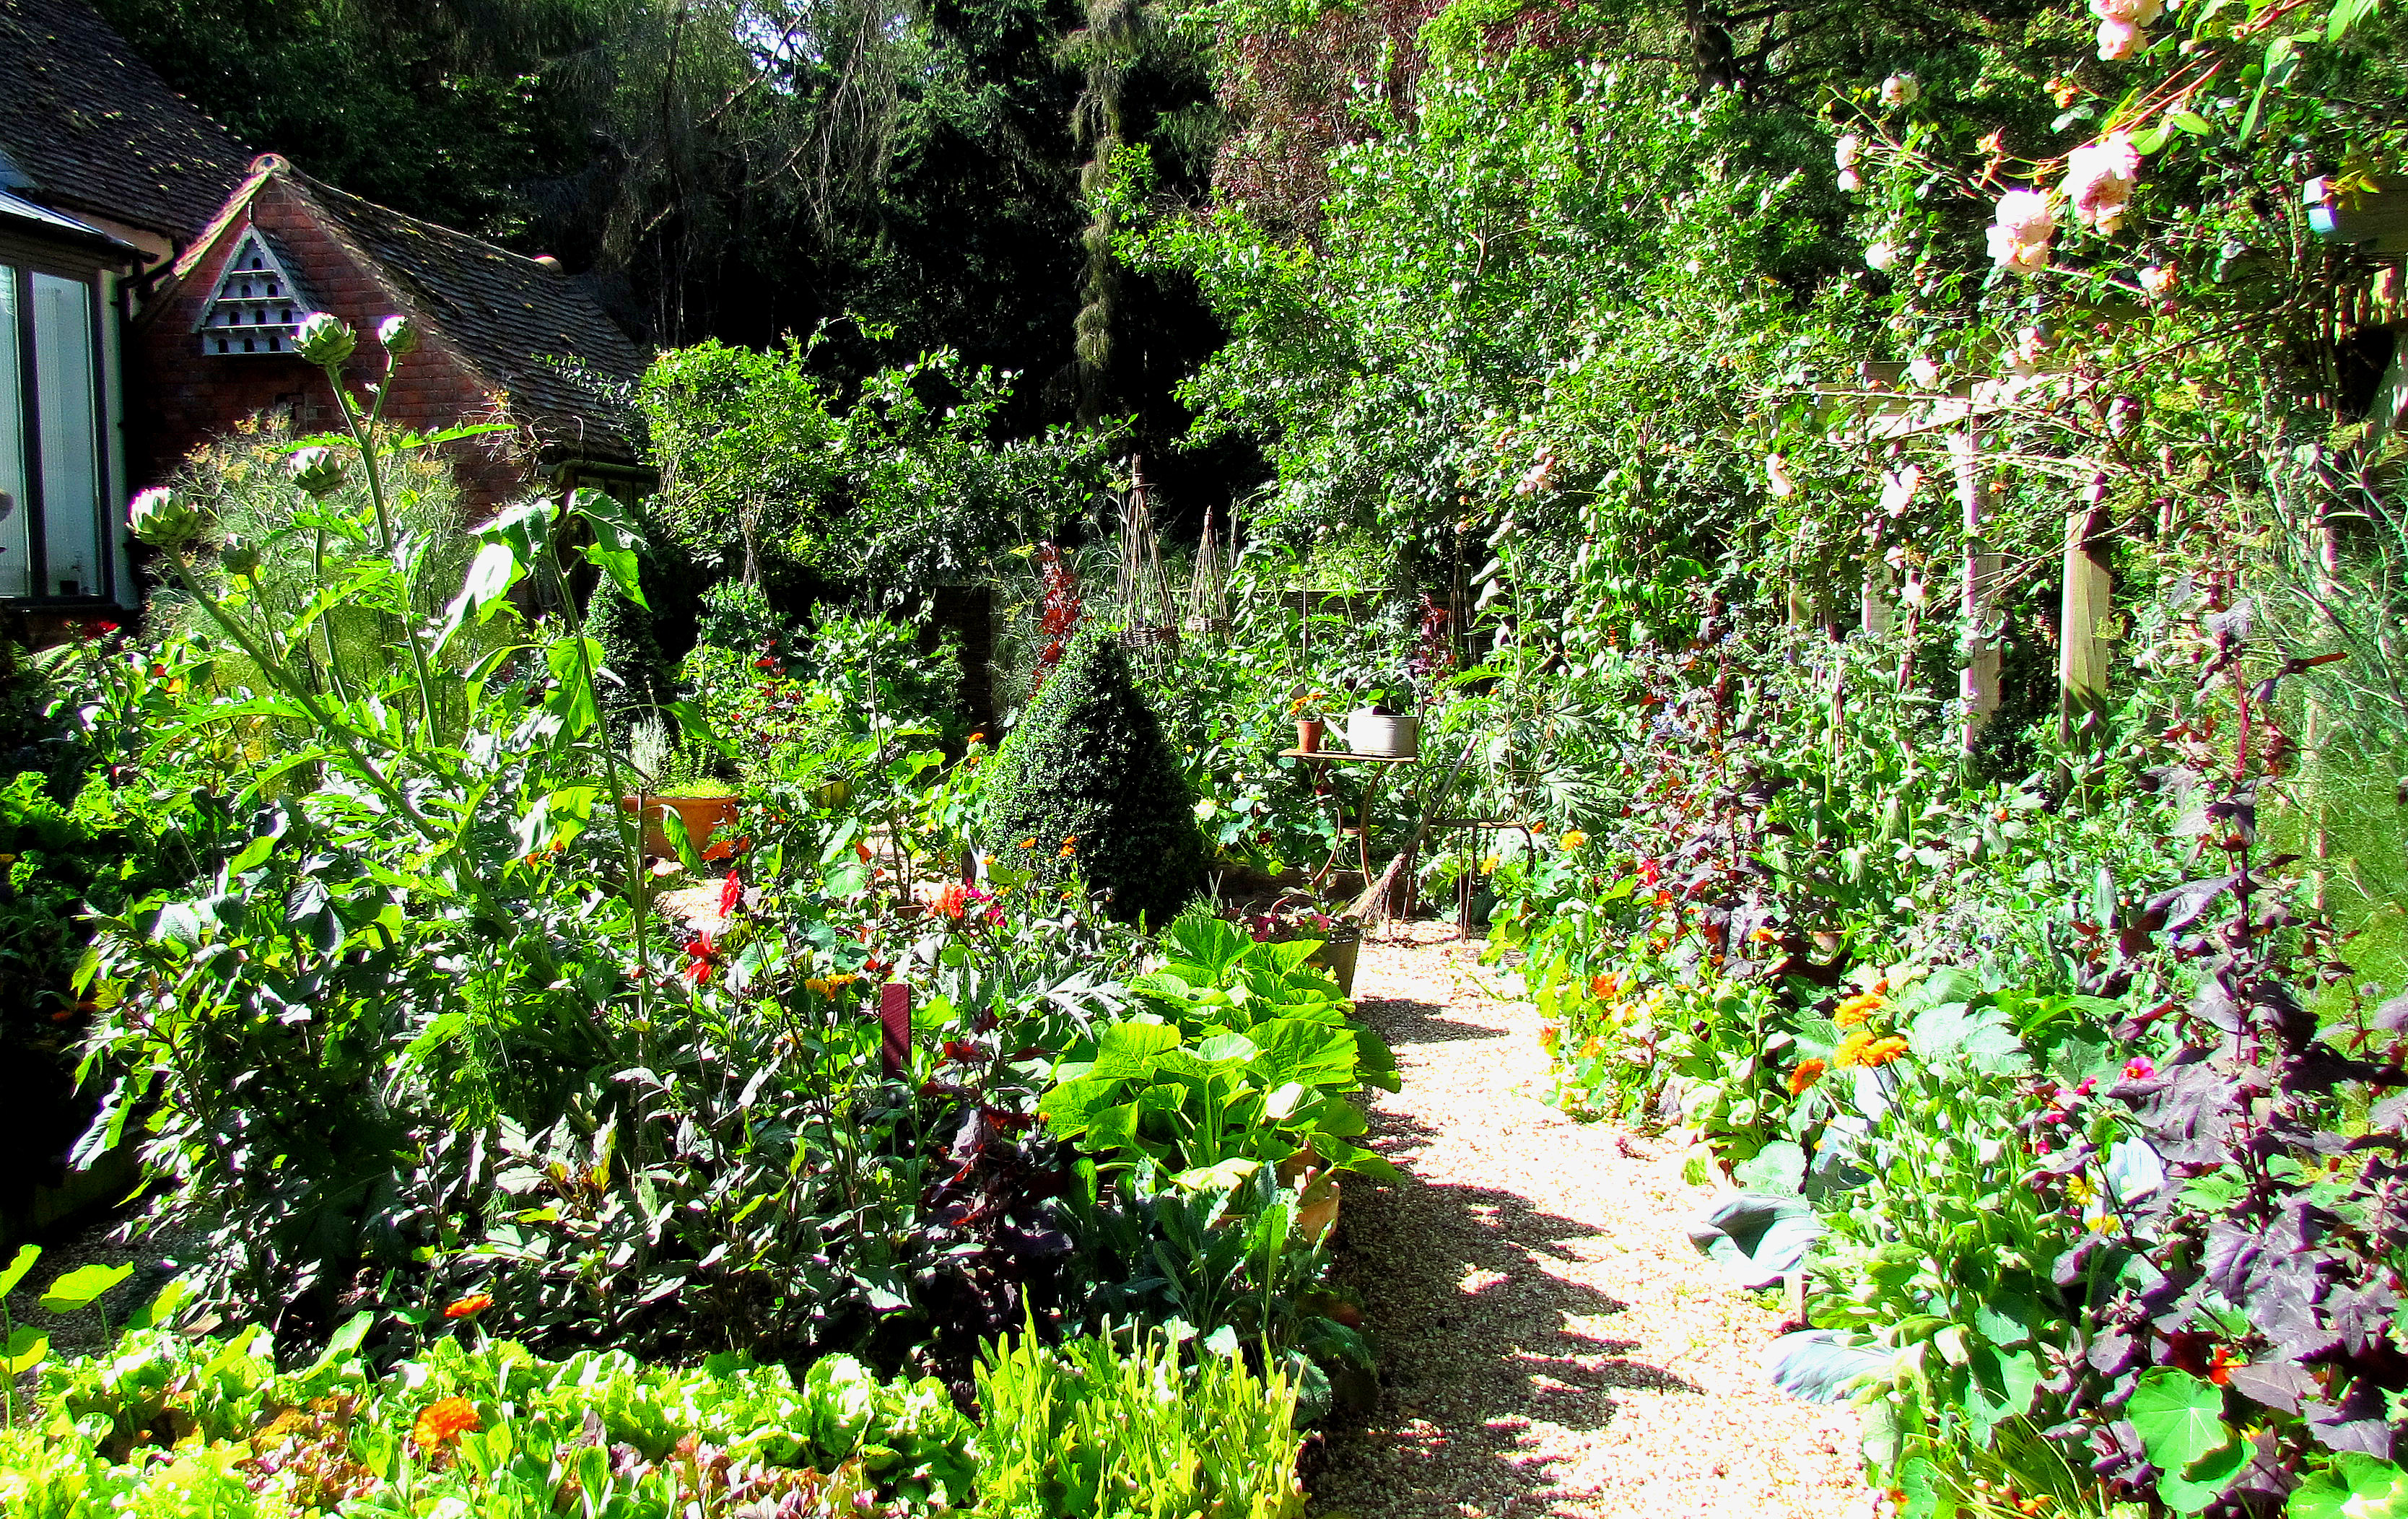 Garden Design School a case of garden envy? | california school of garden design